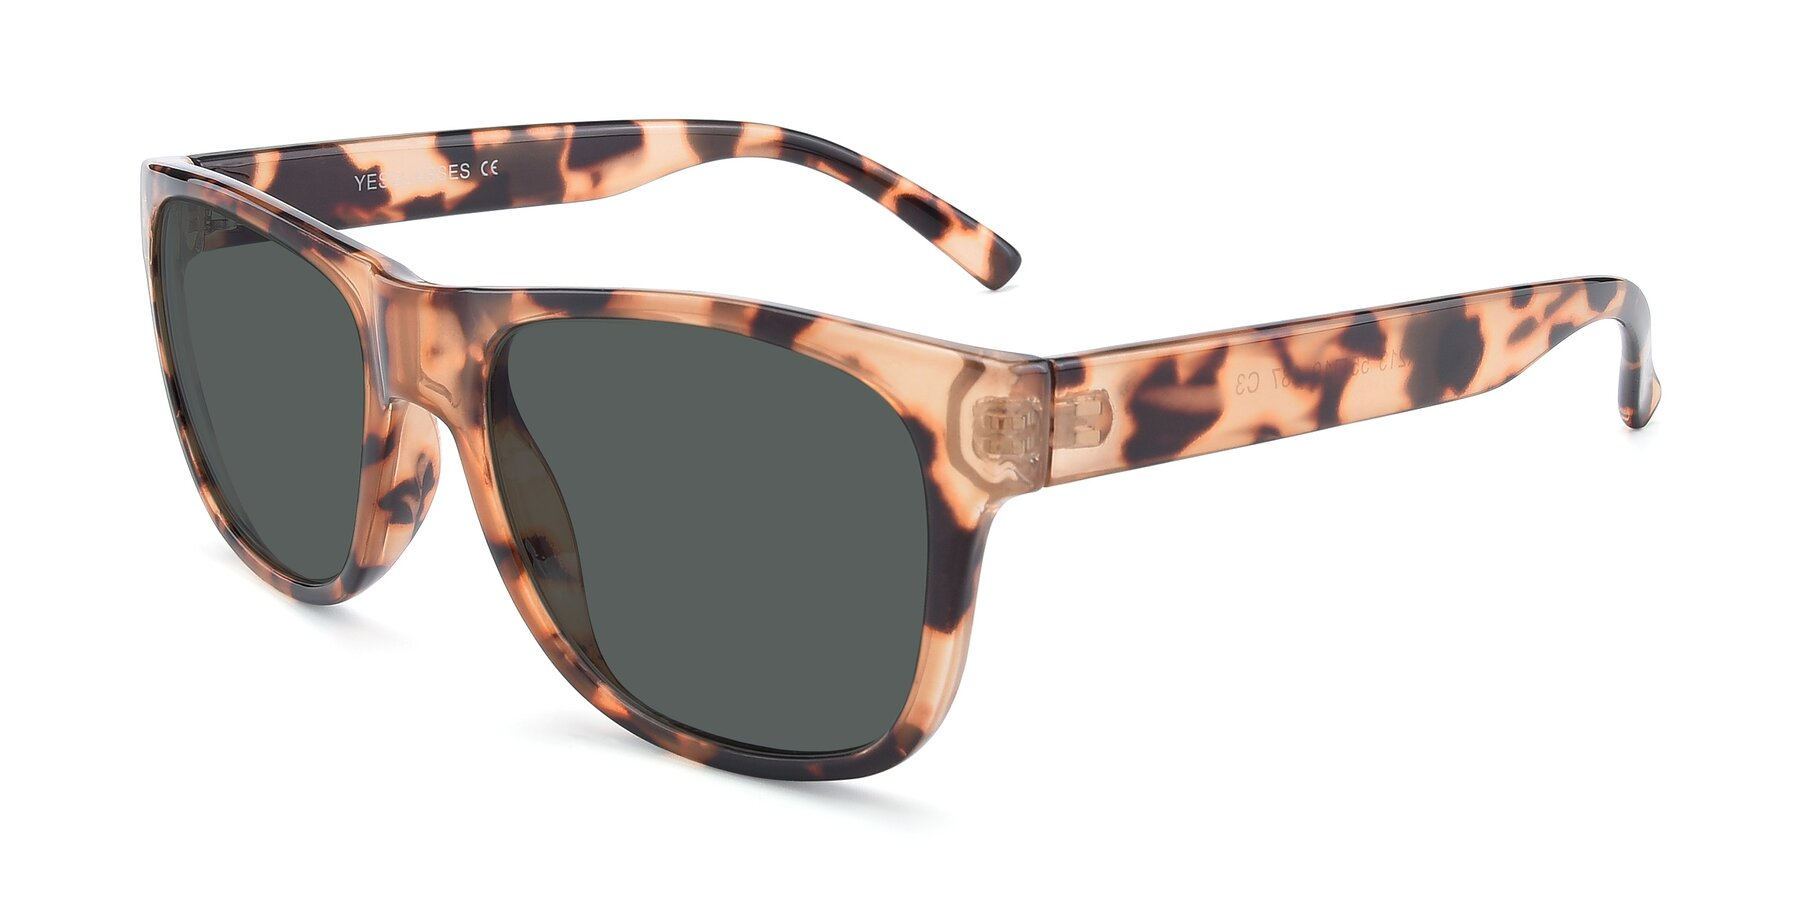 Angle of SSR213 in Translucent Tortoise with Gray Polarized Lenses